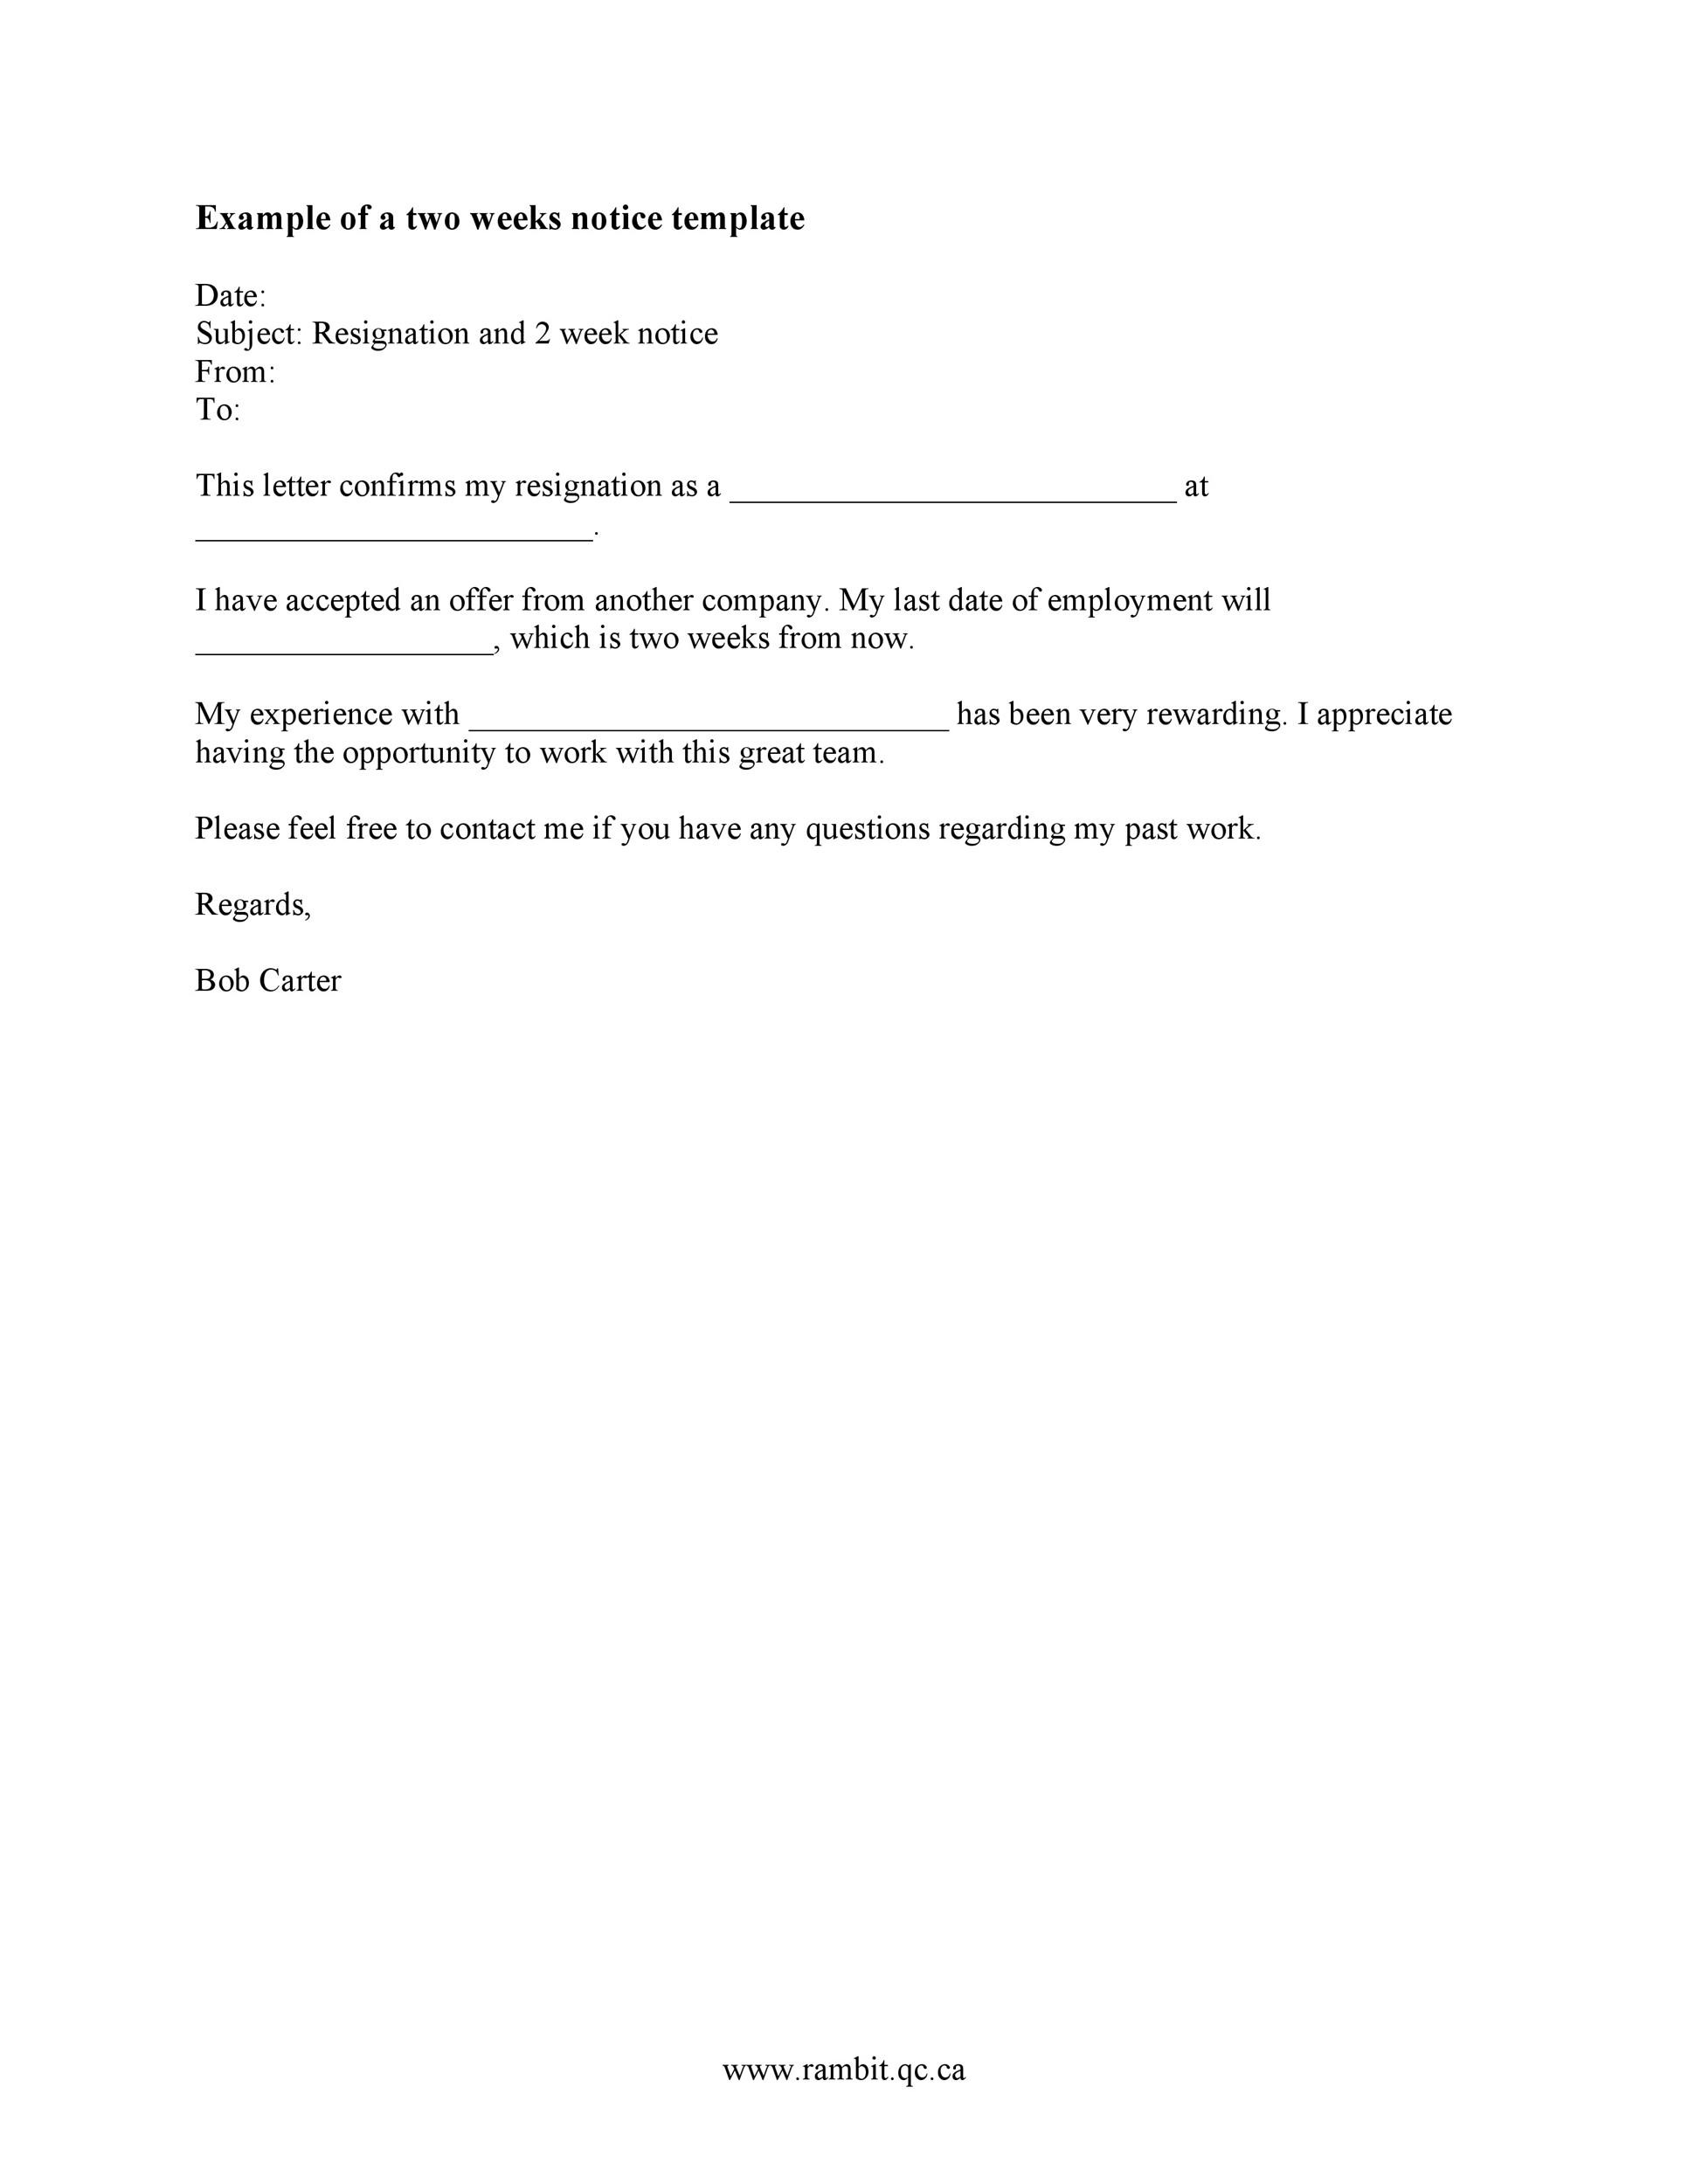 how to write a two weeks notice example These simple letter of resignation and last day email templates will help you give your notice without feeling stressed and leave on good terms while expanding your professional network already know what you're looking for resignation letter template - two weeks notice last day at work email - say goodbye to.